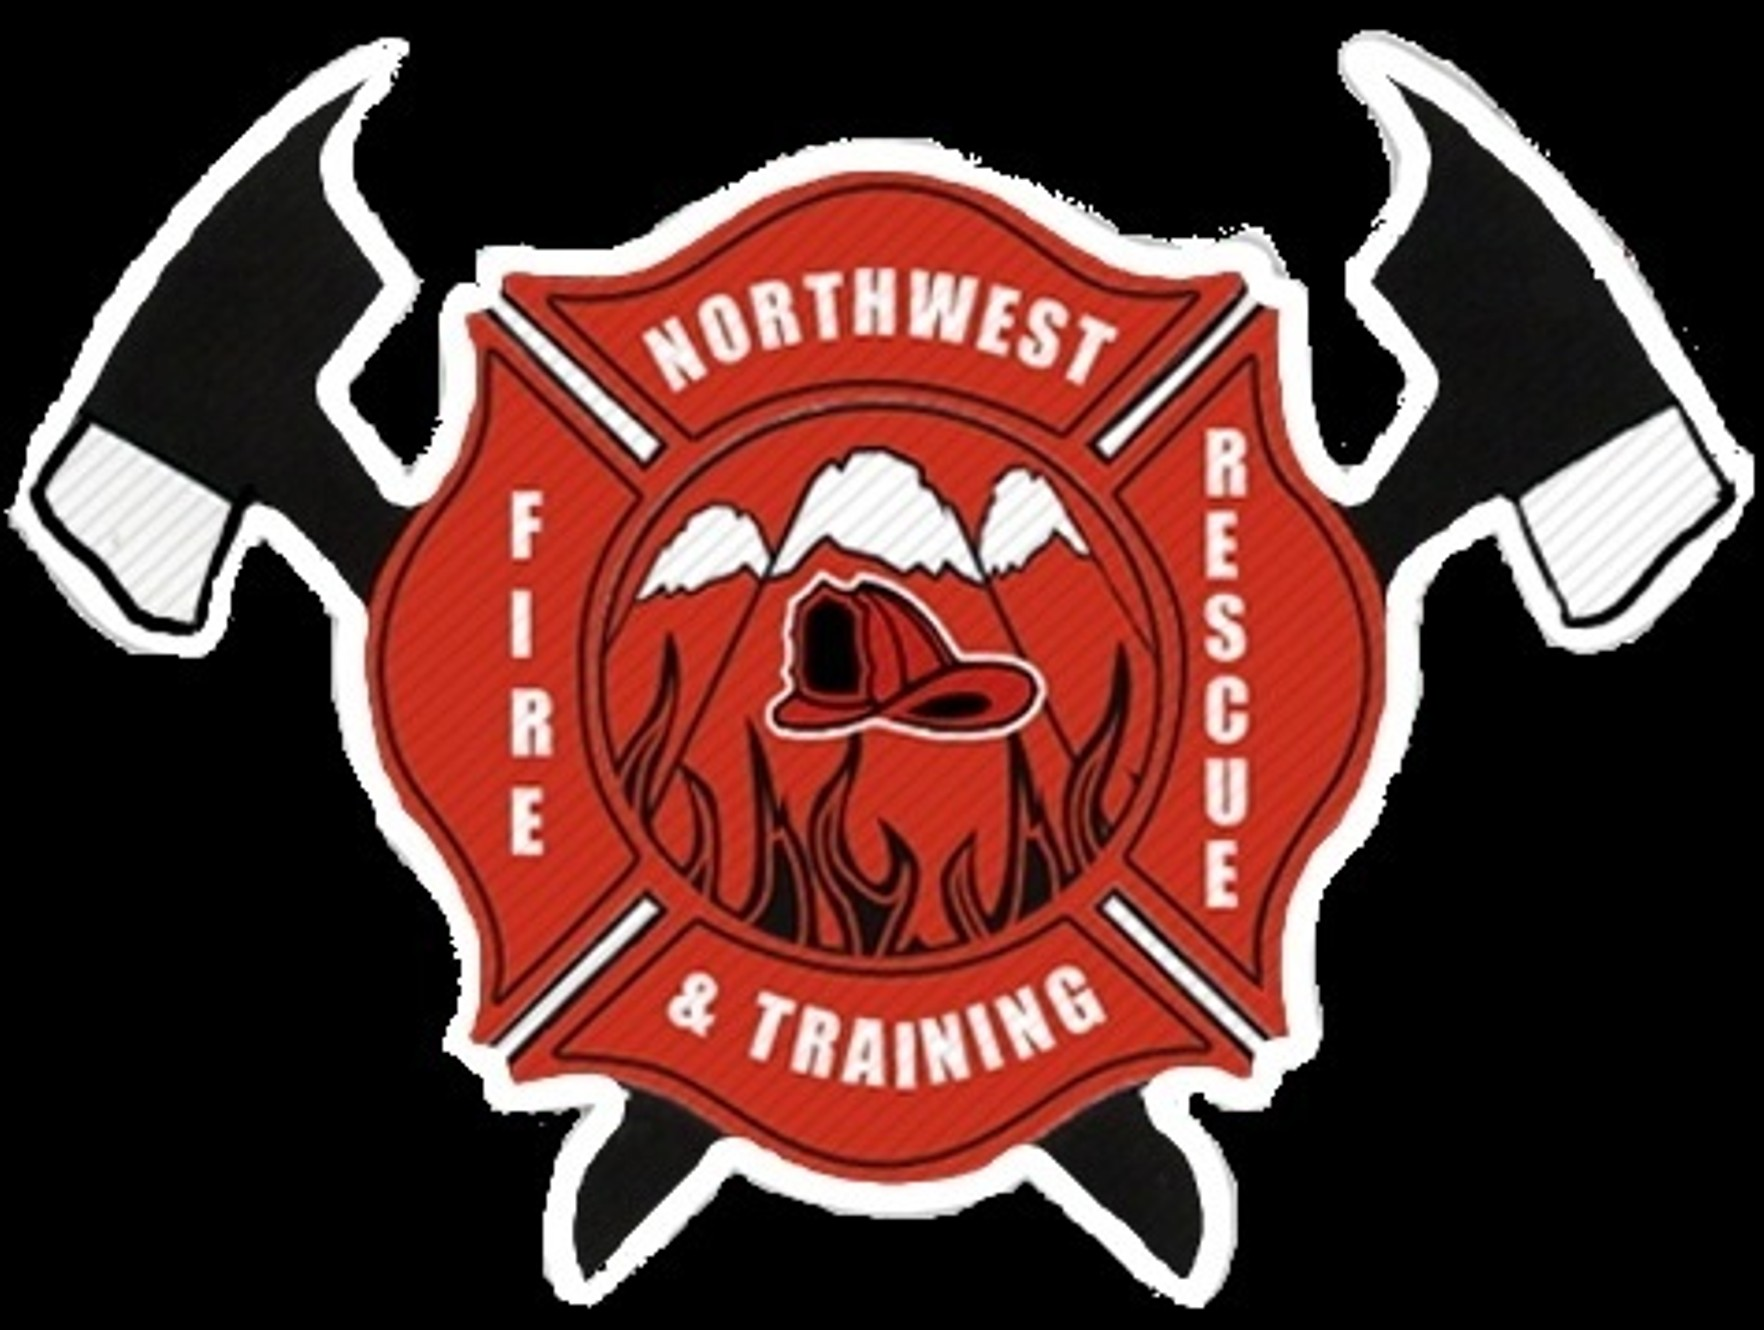 Northwest Fire Rescue & Training logo